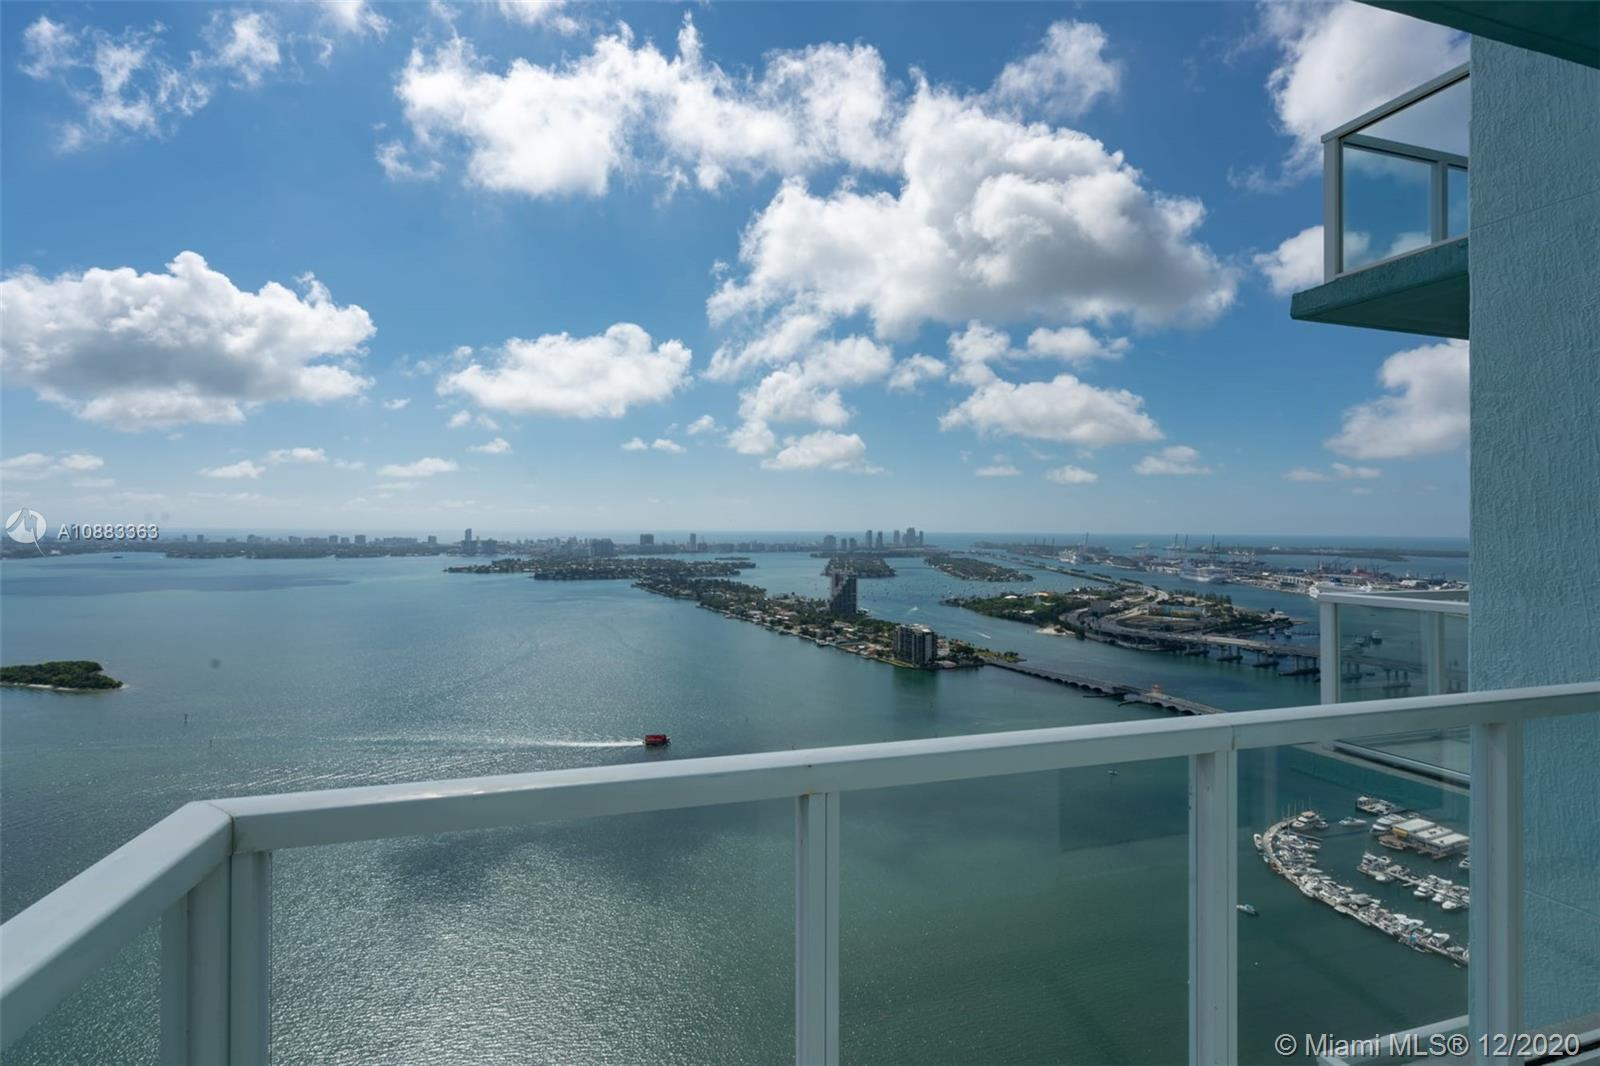 Rarely Available Penthouse at Quantum on the Bay. Tastefully renovated corner unit. Enjoy breathtaking panoramic views of Biscayne Bay, Miami Beach and the Ocean. Three Balconies with eastern, norther and western exposures. Wraparound balcony on the Master Bedroom. Beautiful Porcelain floors throughout. 3 bed / 3.5baths. Building has great amenities including 2 pools, 2 story gym and much much more.